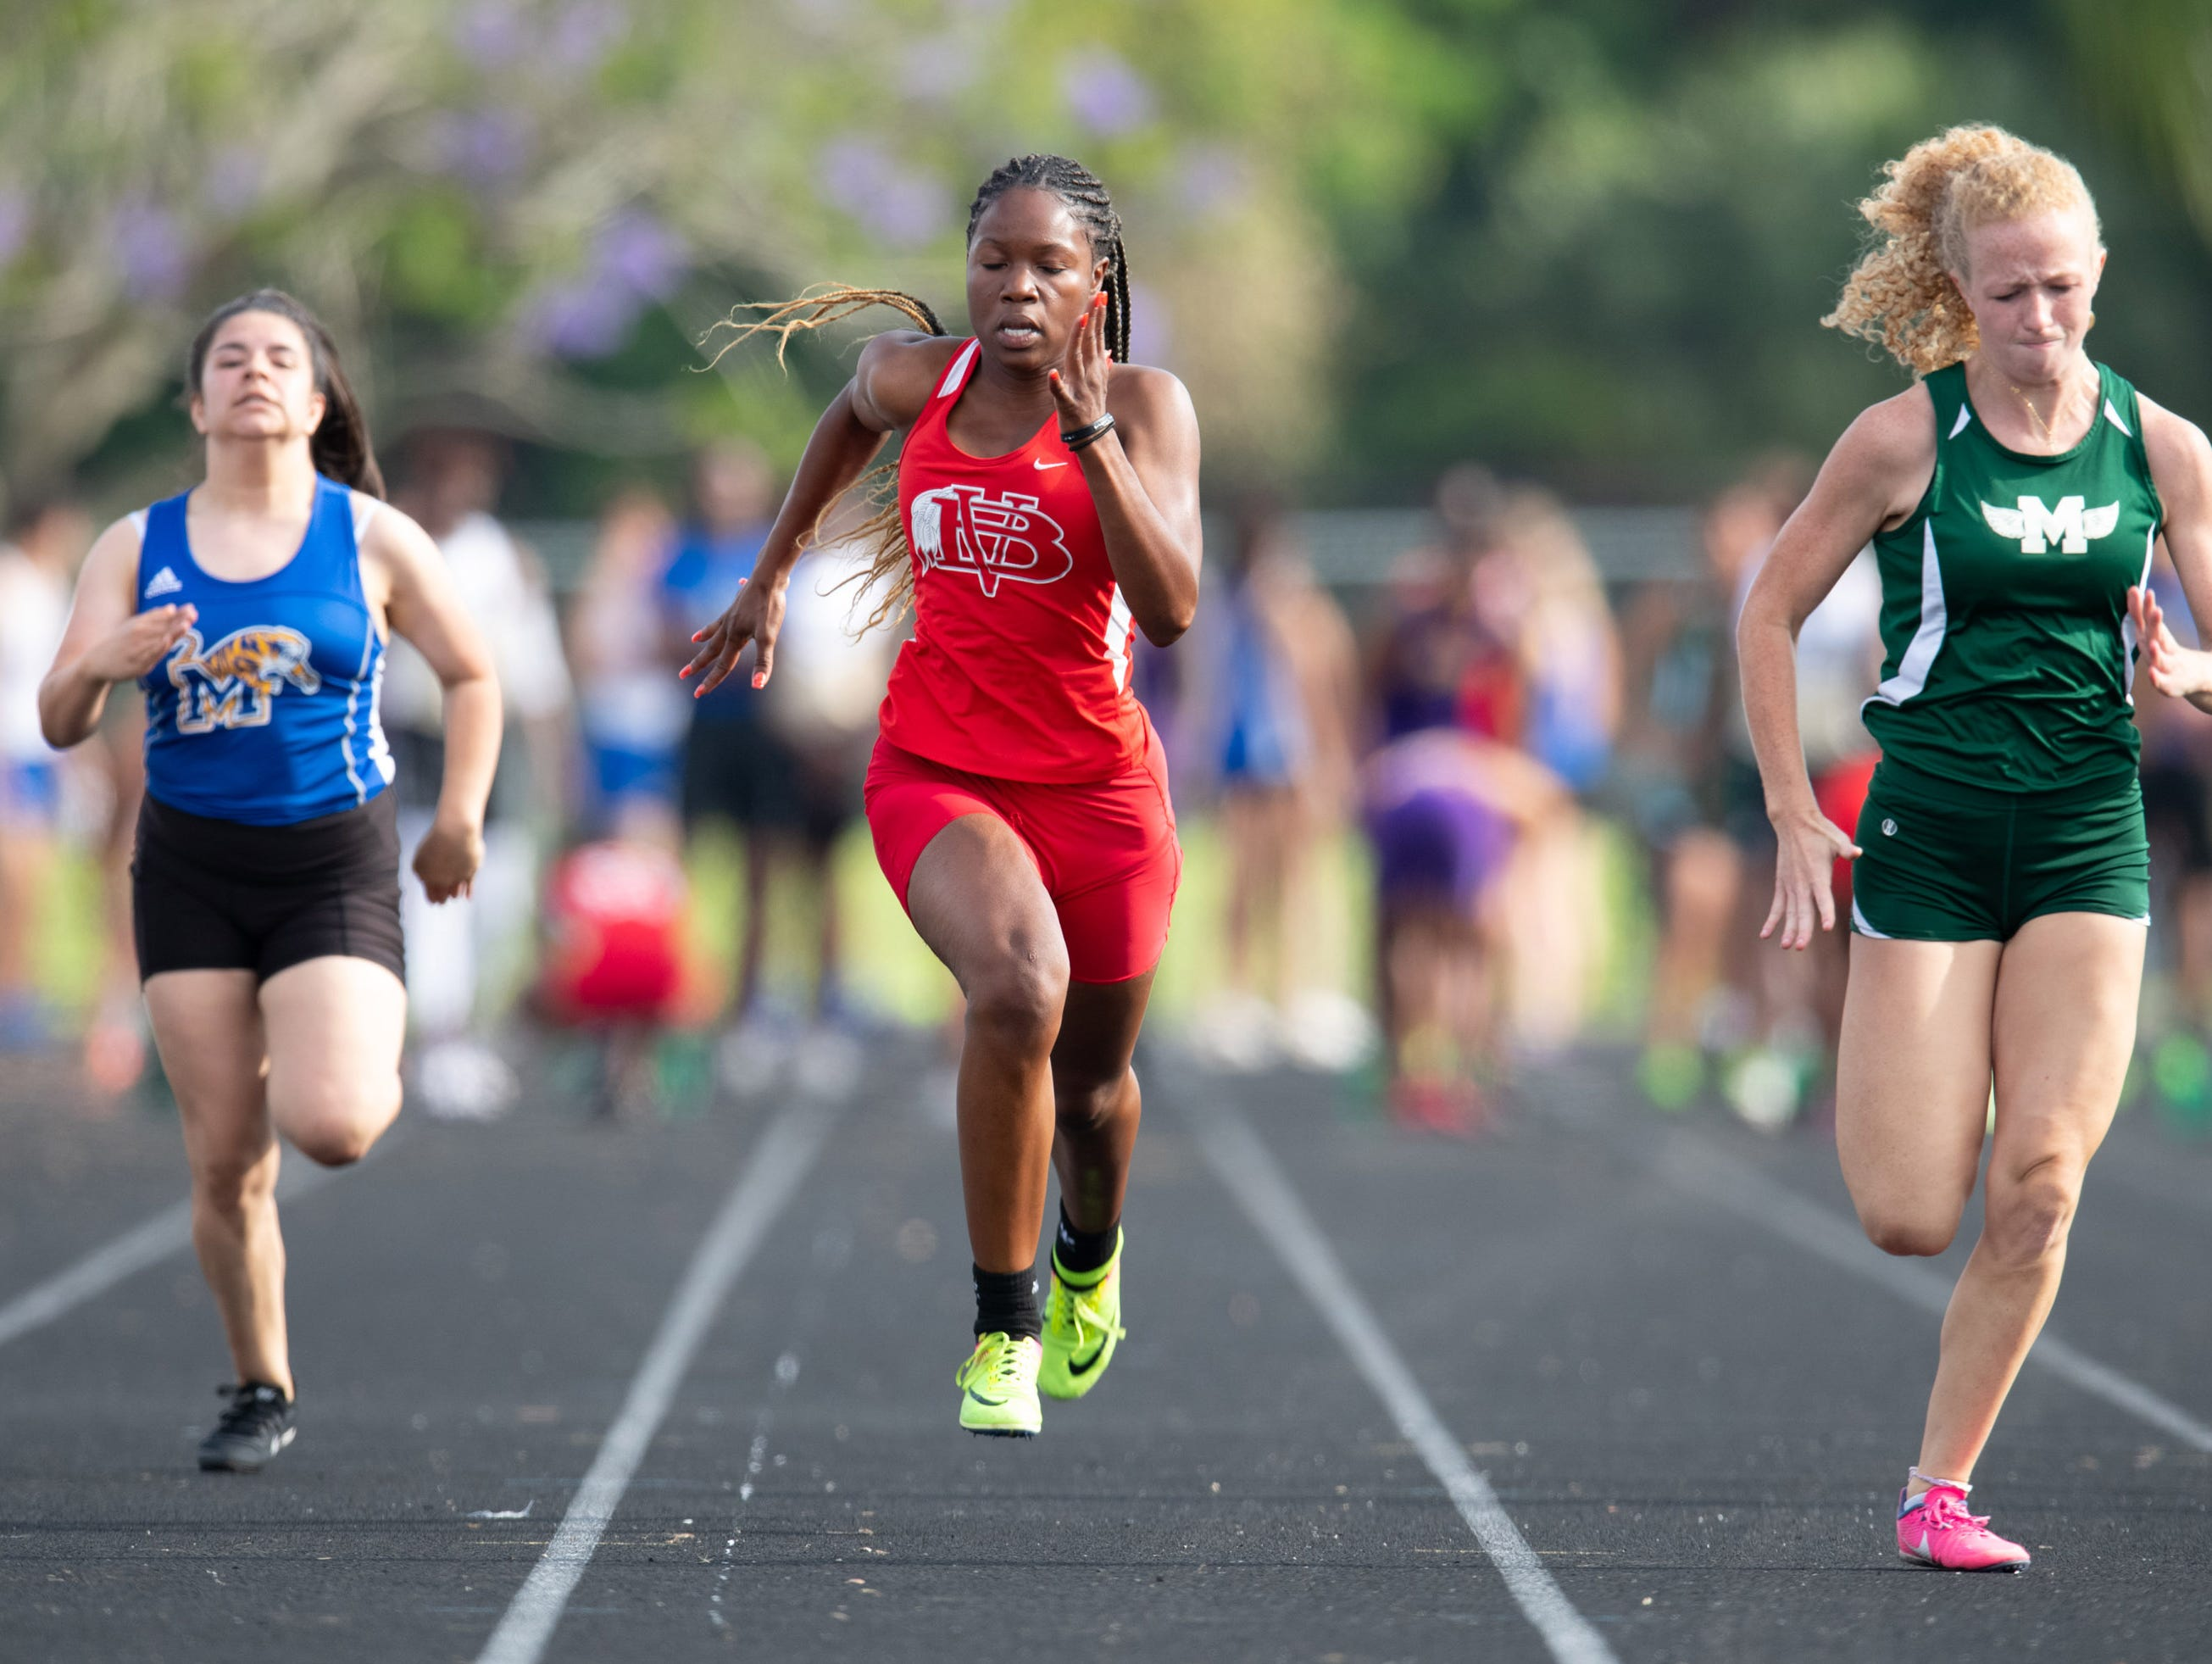 Athletes compete in the District 9-4A Track Meet at Martin County High School on Wednesday, April 10, 2019, in Stuart.